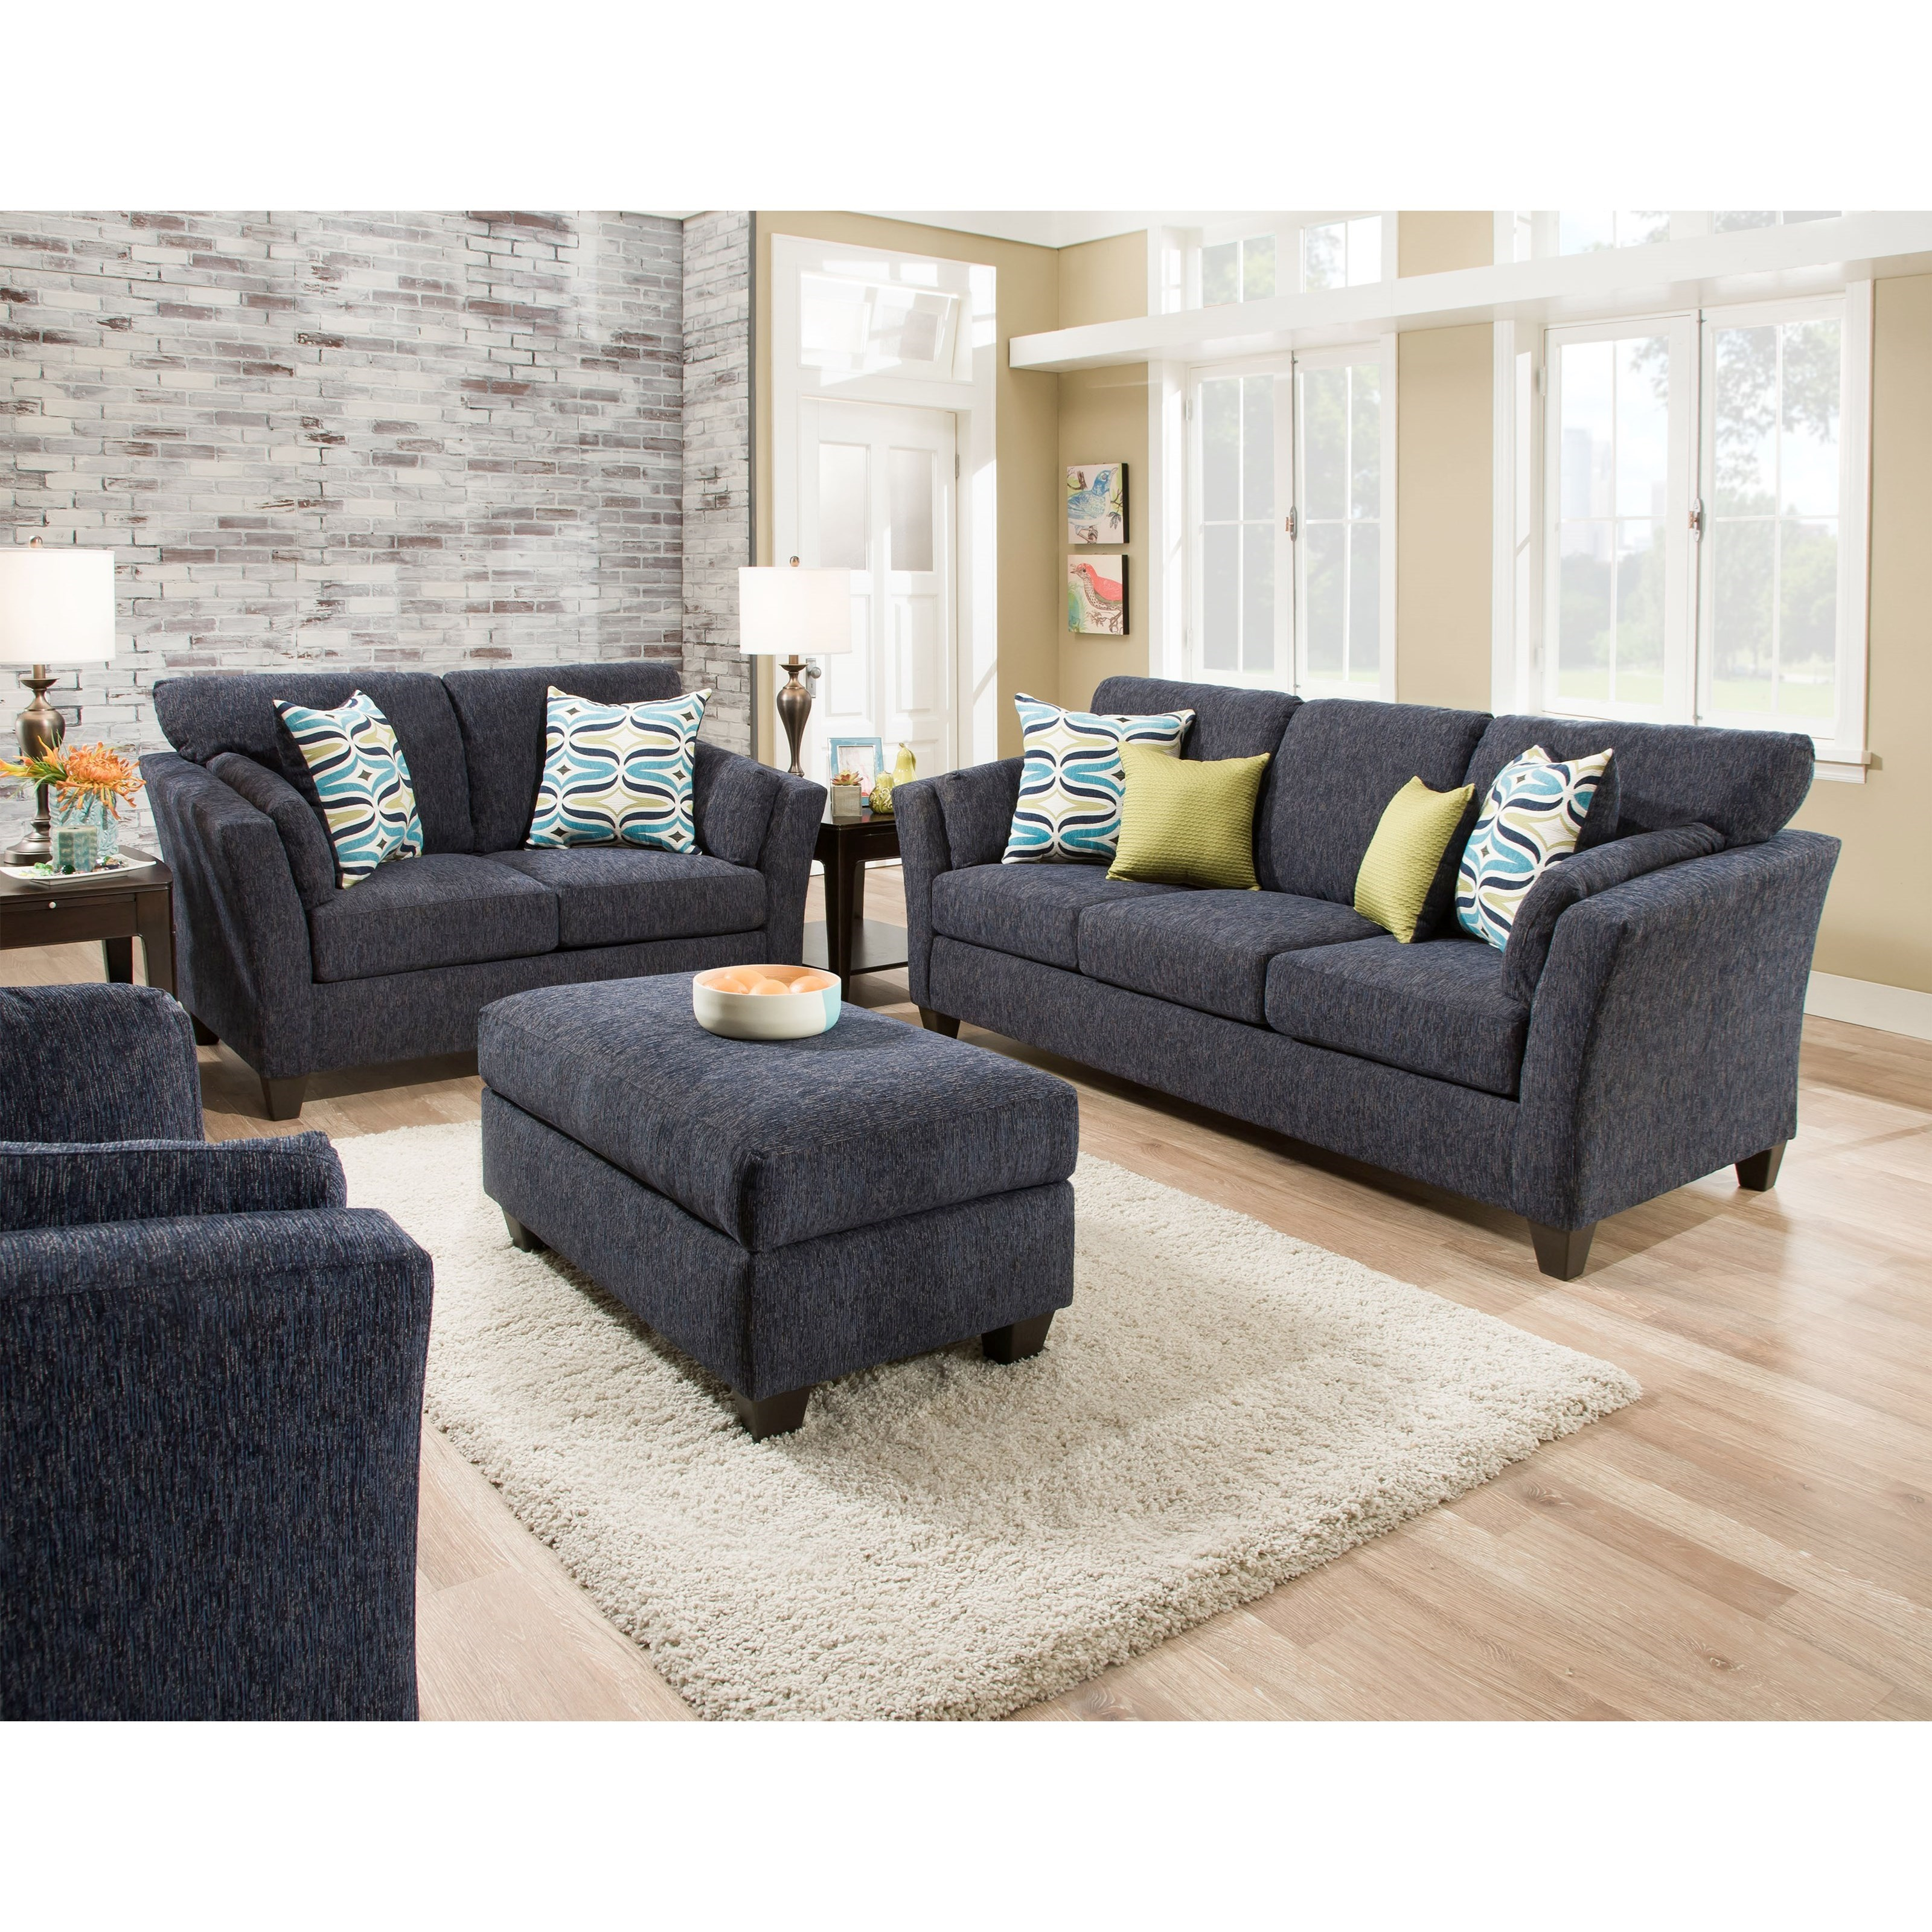 American Furniture 7300 Living Room Group Miskelly Furniture Stationary Living Room Groups